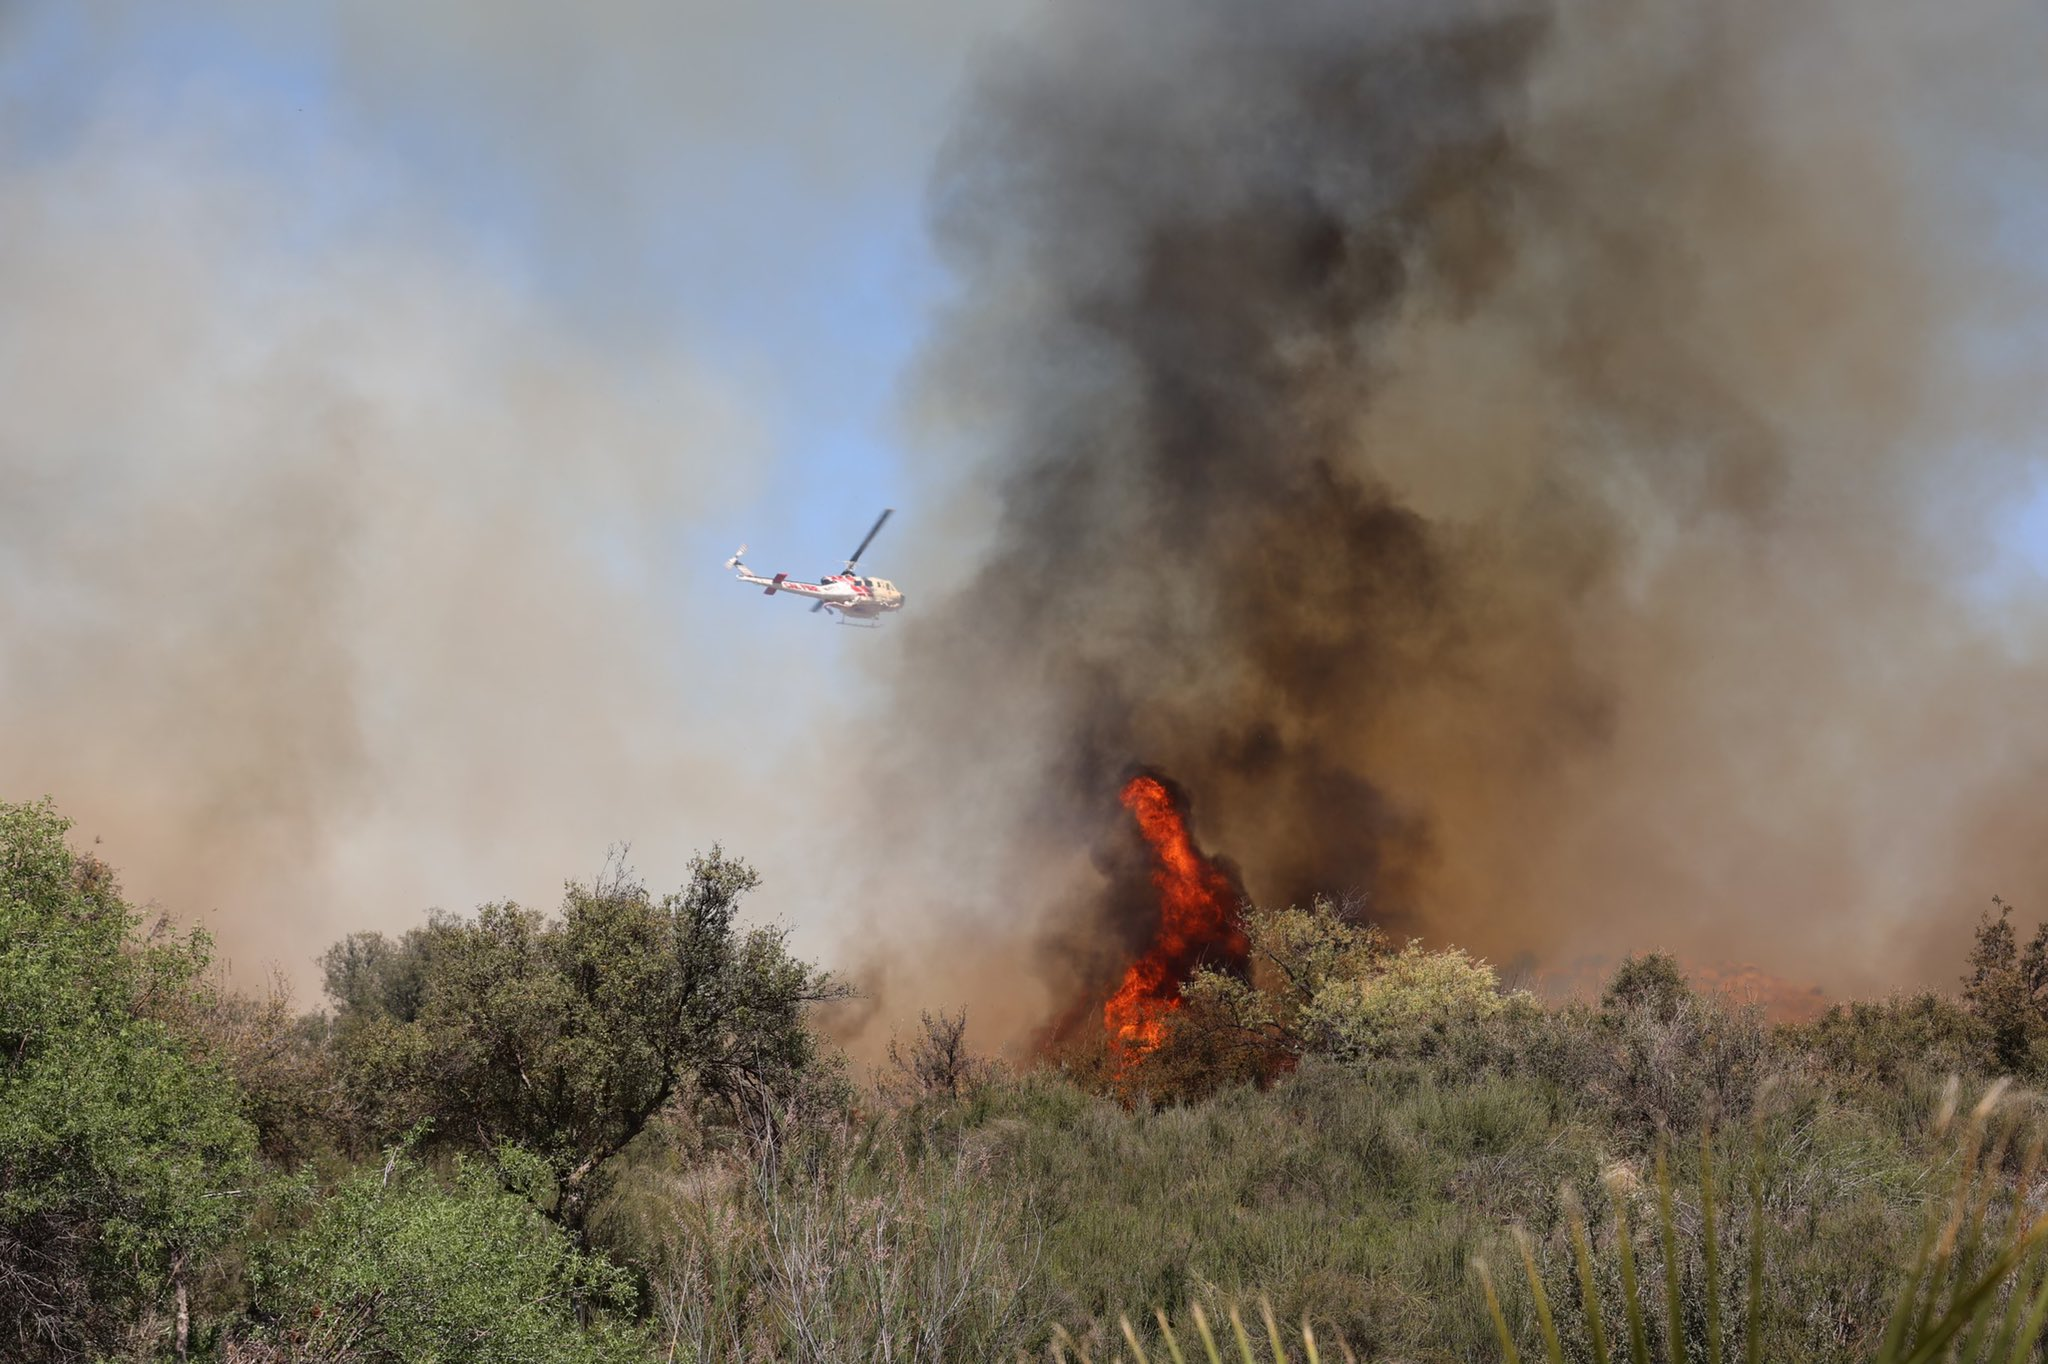 The Chico Fire burns in Riverside County, southwest of Mead Valley, on April 19, 2020, in a photo released by Cal Fire Riverside.